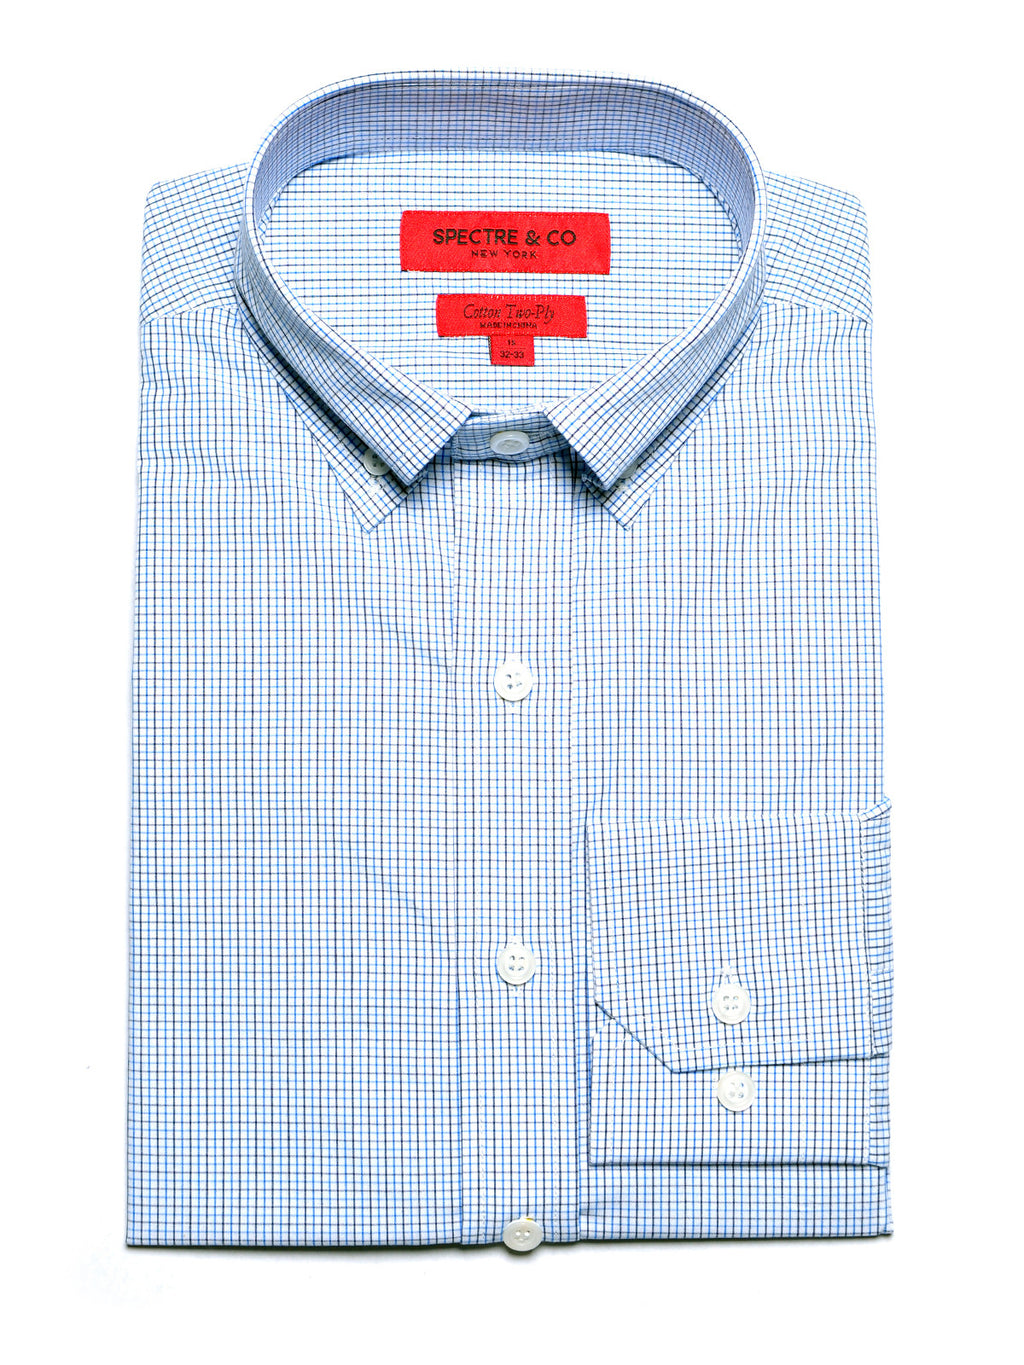 Slim Fit Grayson Tattersall Dress Shirt